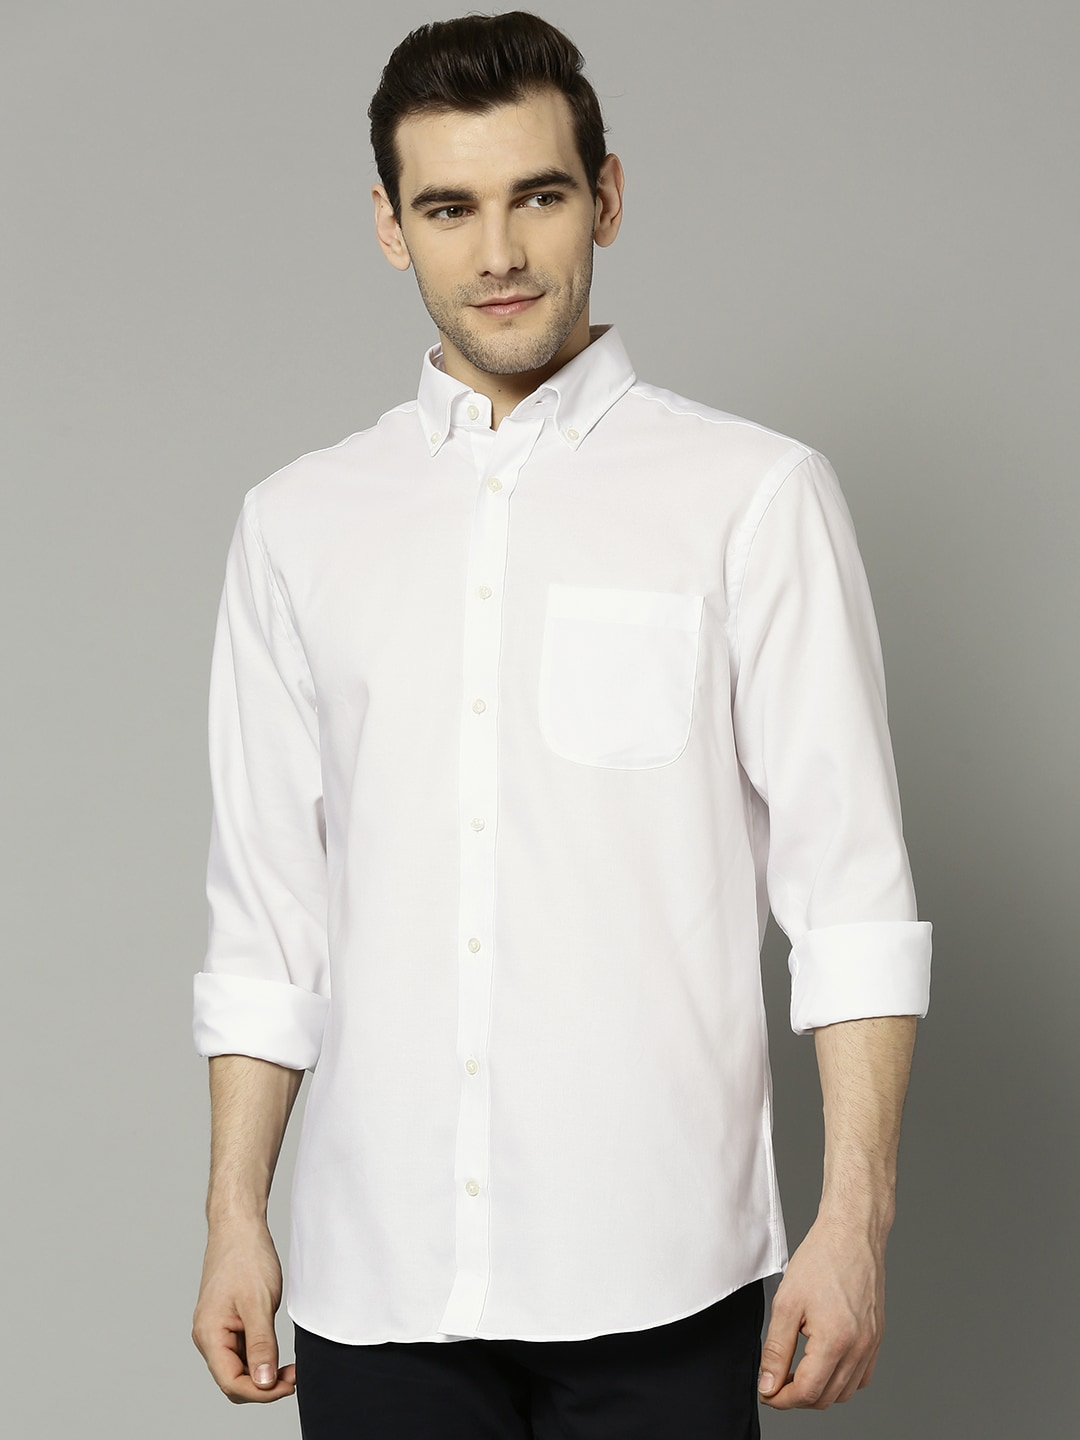 mens clothing buy clothing for men online in india myntra8080237 Print T Shirts Cheap India #18